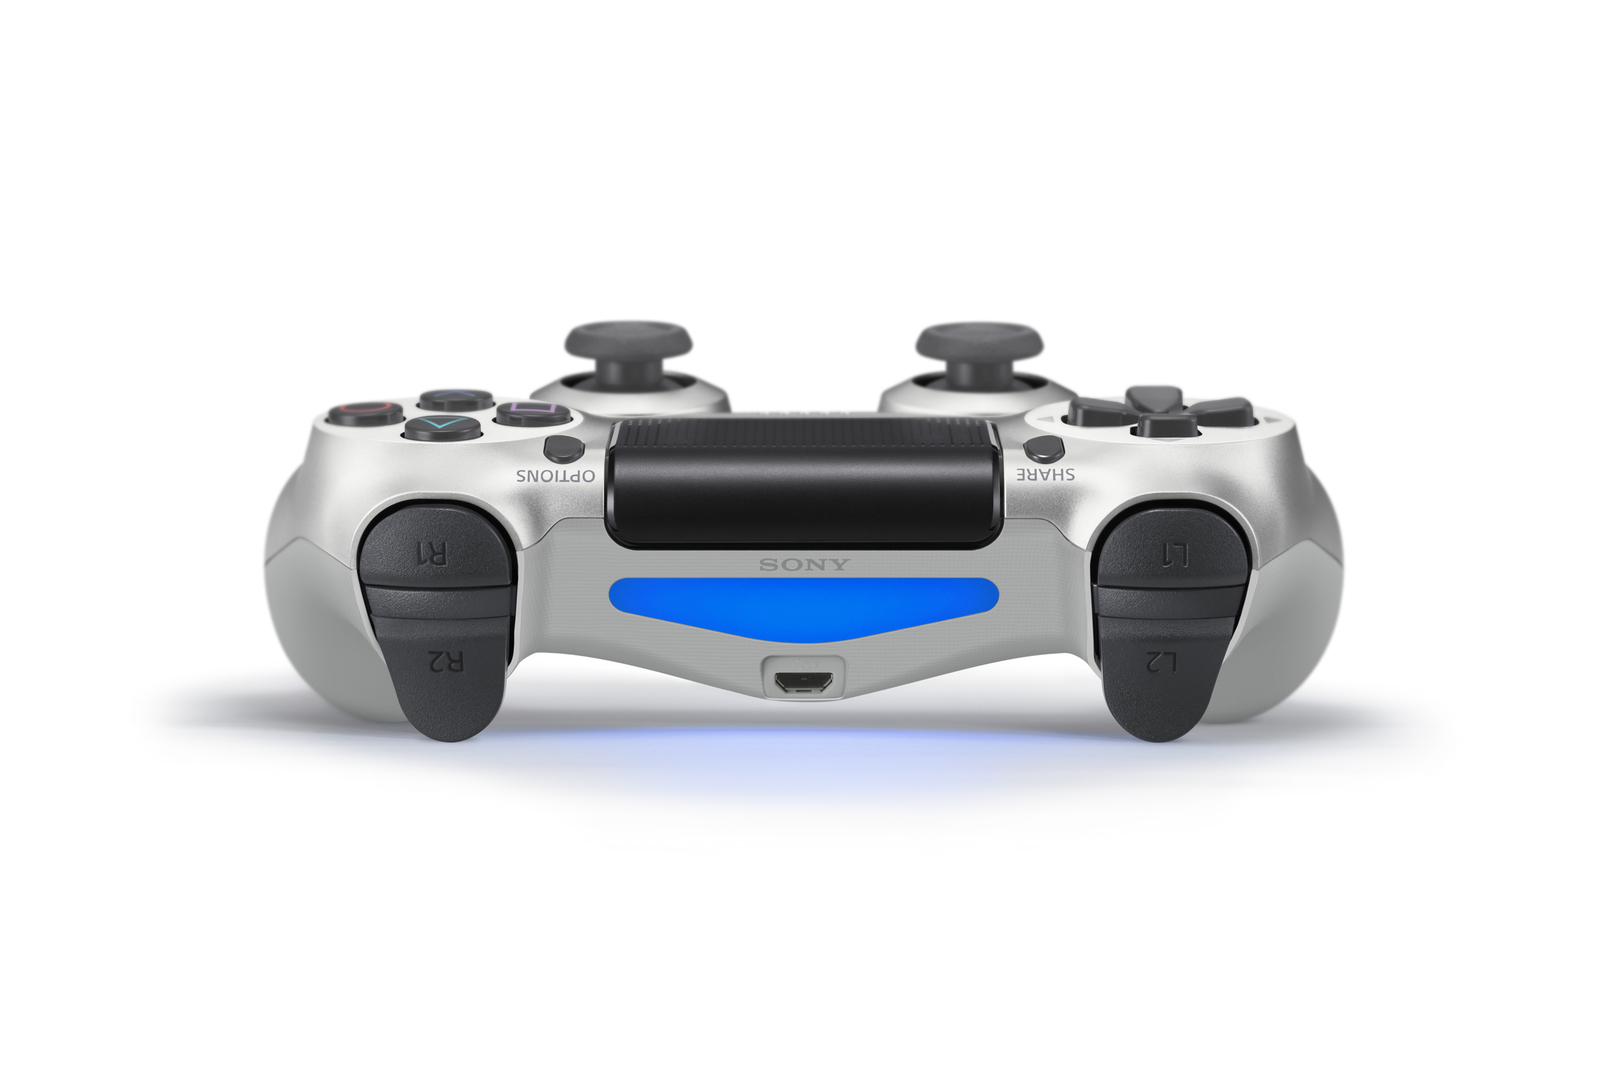 PlayStation 4 Dual Shock 4 v2 Wireless Controller - Silver for PS4 image